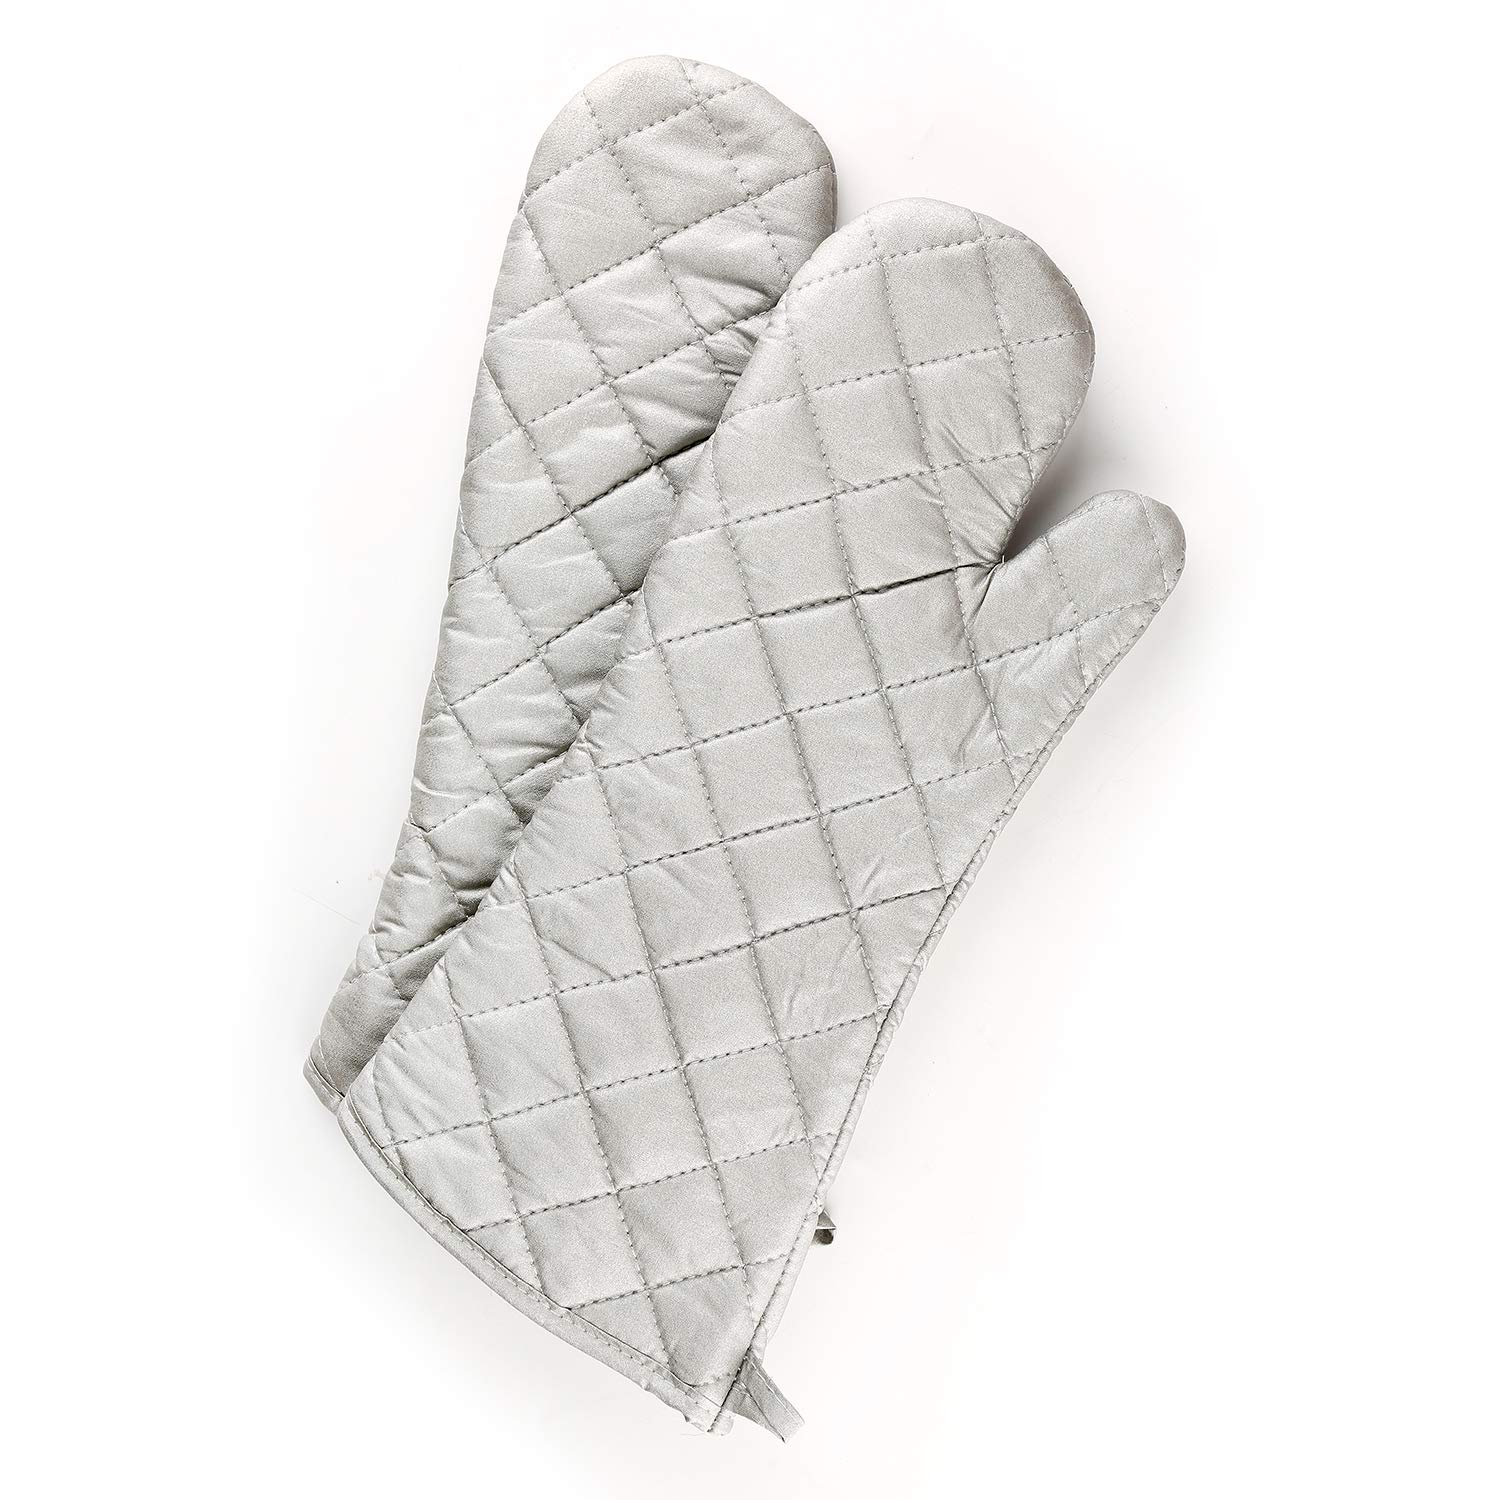 "VEIKERY Coated Silver Oven Mitts 100% Cotton Heat Resistant Protection Non Slip Kitchen Oven Gloves for Baking Grilling Barbecue BBQ Machine Washable Set of 2 17.7"" x 6.6"""